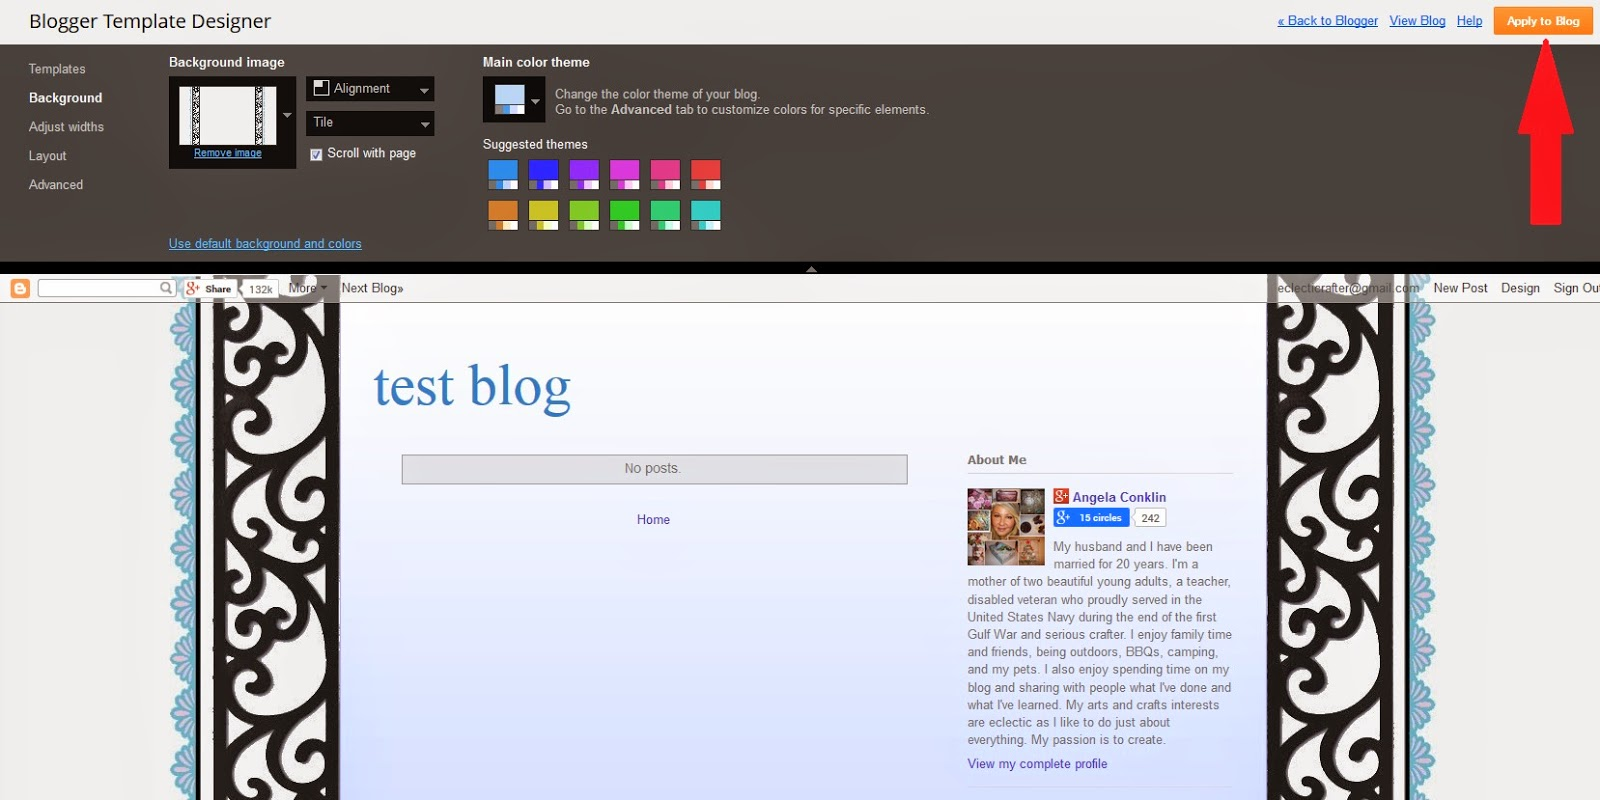 Upload Your New (Made by You) Background Image to Your Blog